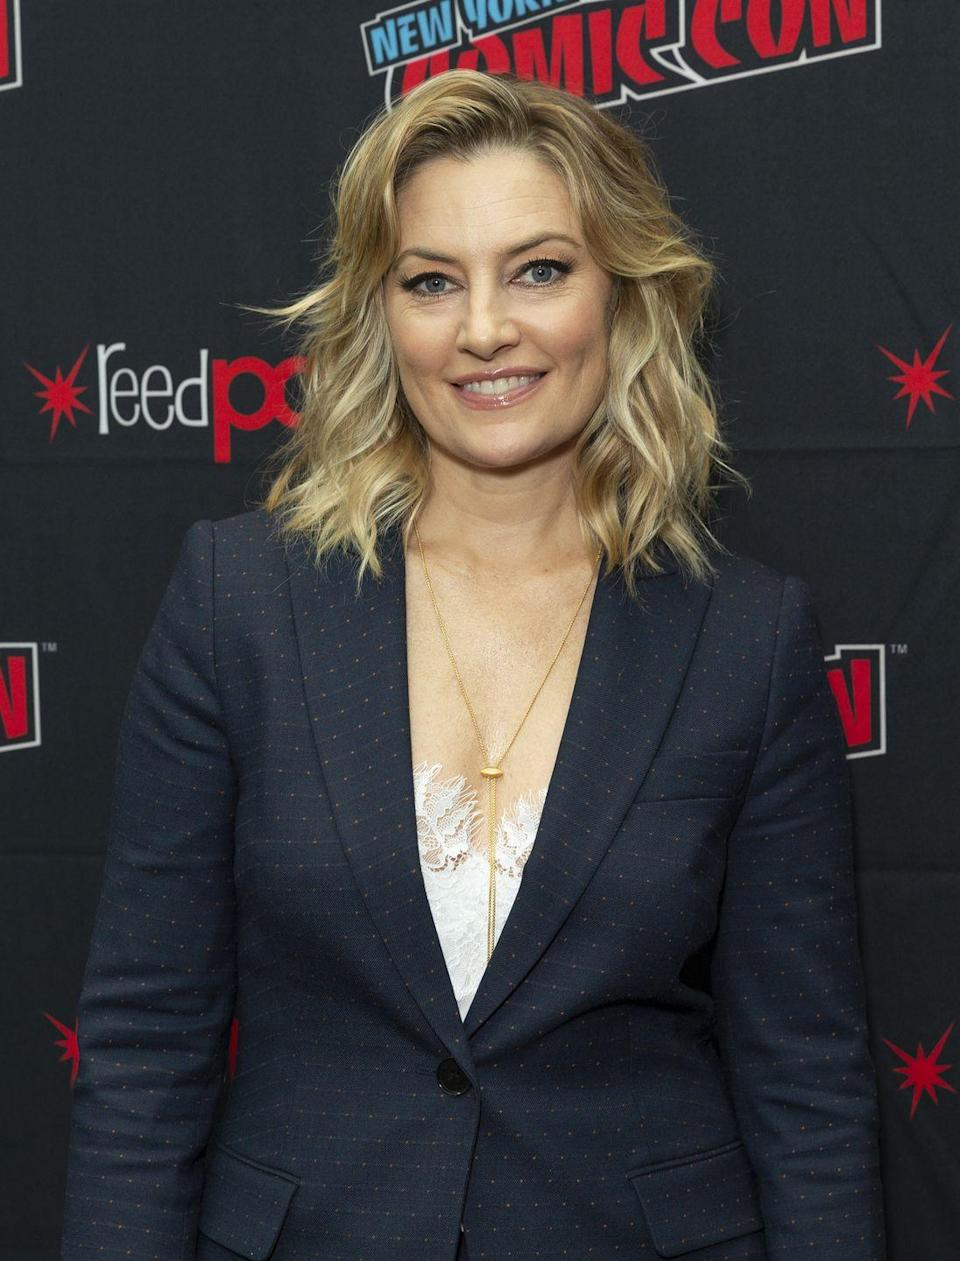 """<p><strong>The role: </strong><a href=""""https://tvline.com/gallery/madchen-amick-witches-of-east-end-memories-from-the-set-photos/madchen-amick-gilmore-girls/"""" rel=""""nofollow noopener"""" target=""""_blank"""" data-ylk=""""slk:Lorelai Gilmore"""" class=""""link rapid-noclick-resp"""">Lorelai Gilmore</a> in <em>Gilmore Girls</em></p><p><strong>Who *actually* played it:</strong> Lauren Graham</p><p><strong>The role they played instead: </strong>Sherry Tinsdale</p><p>Amick said that she got really far into the testing process and almost played Lorelai, but then the network felt like she didn't seem old enough to be a mom. She was eventually brought back to play Sherry. <br></p>"""